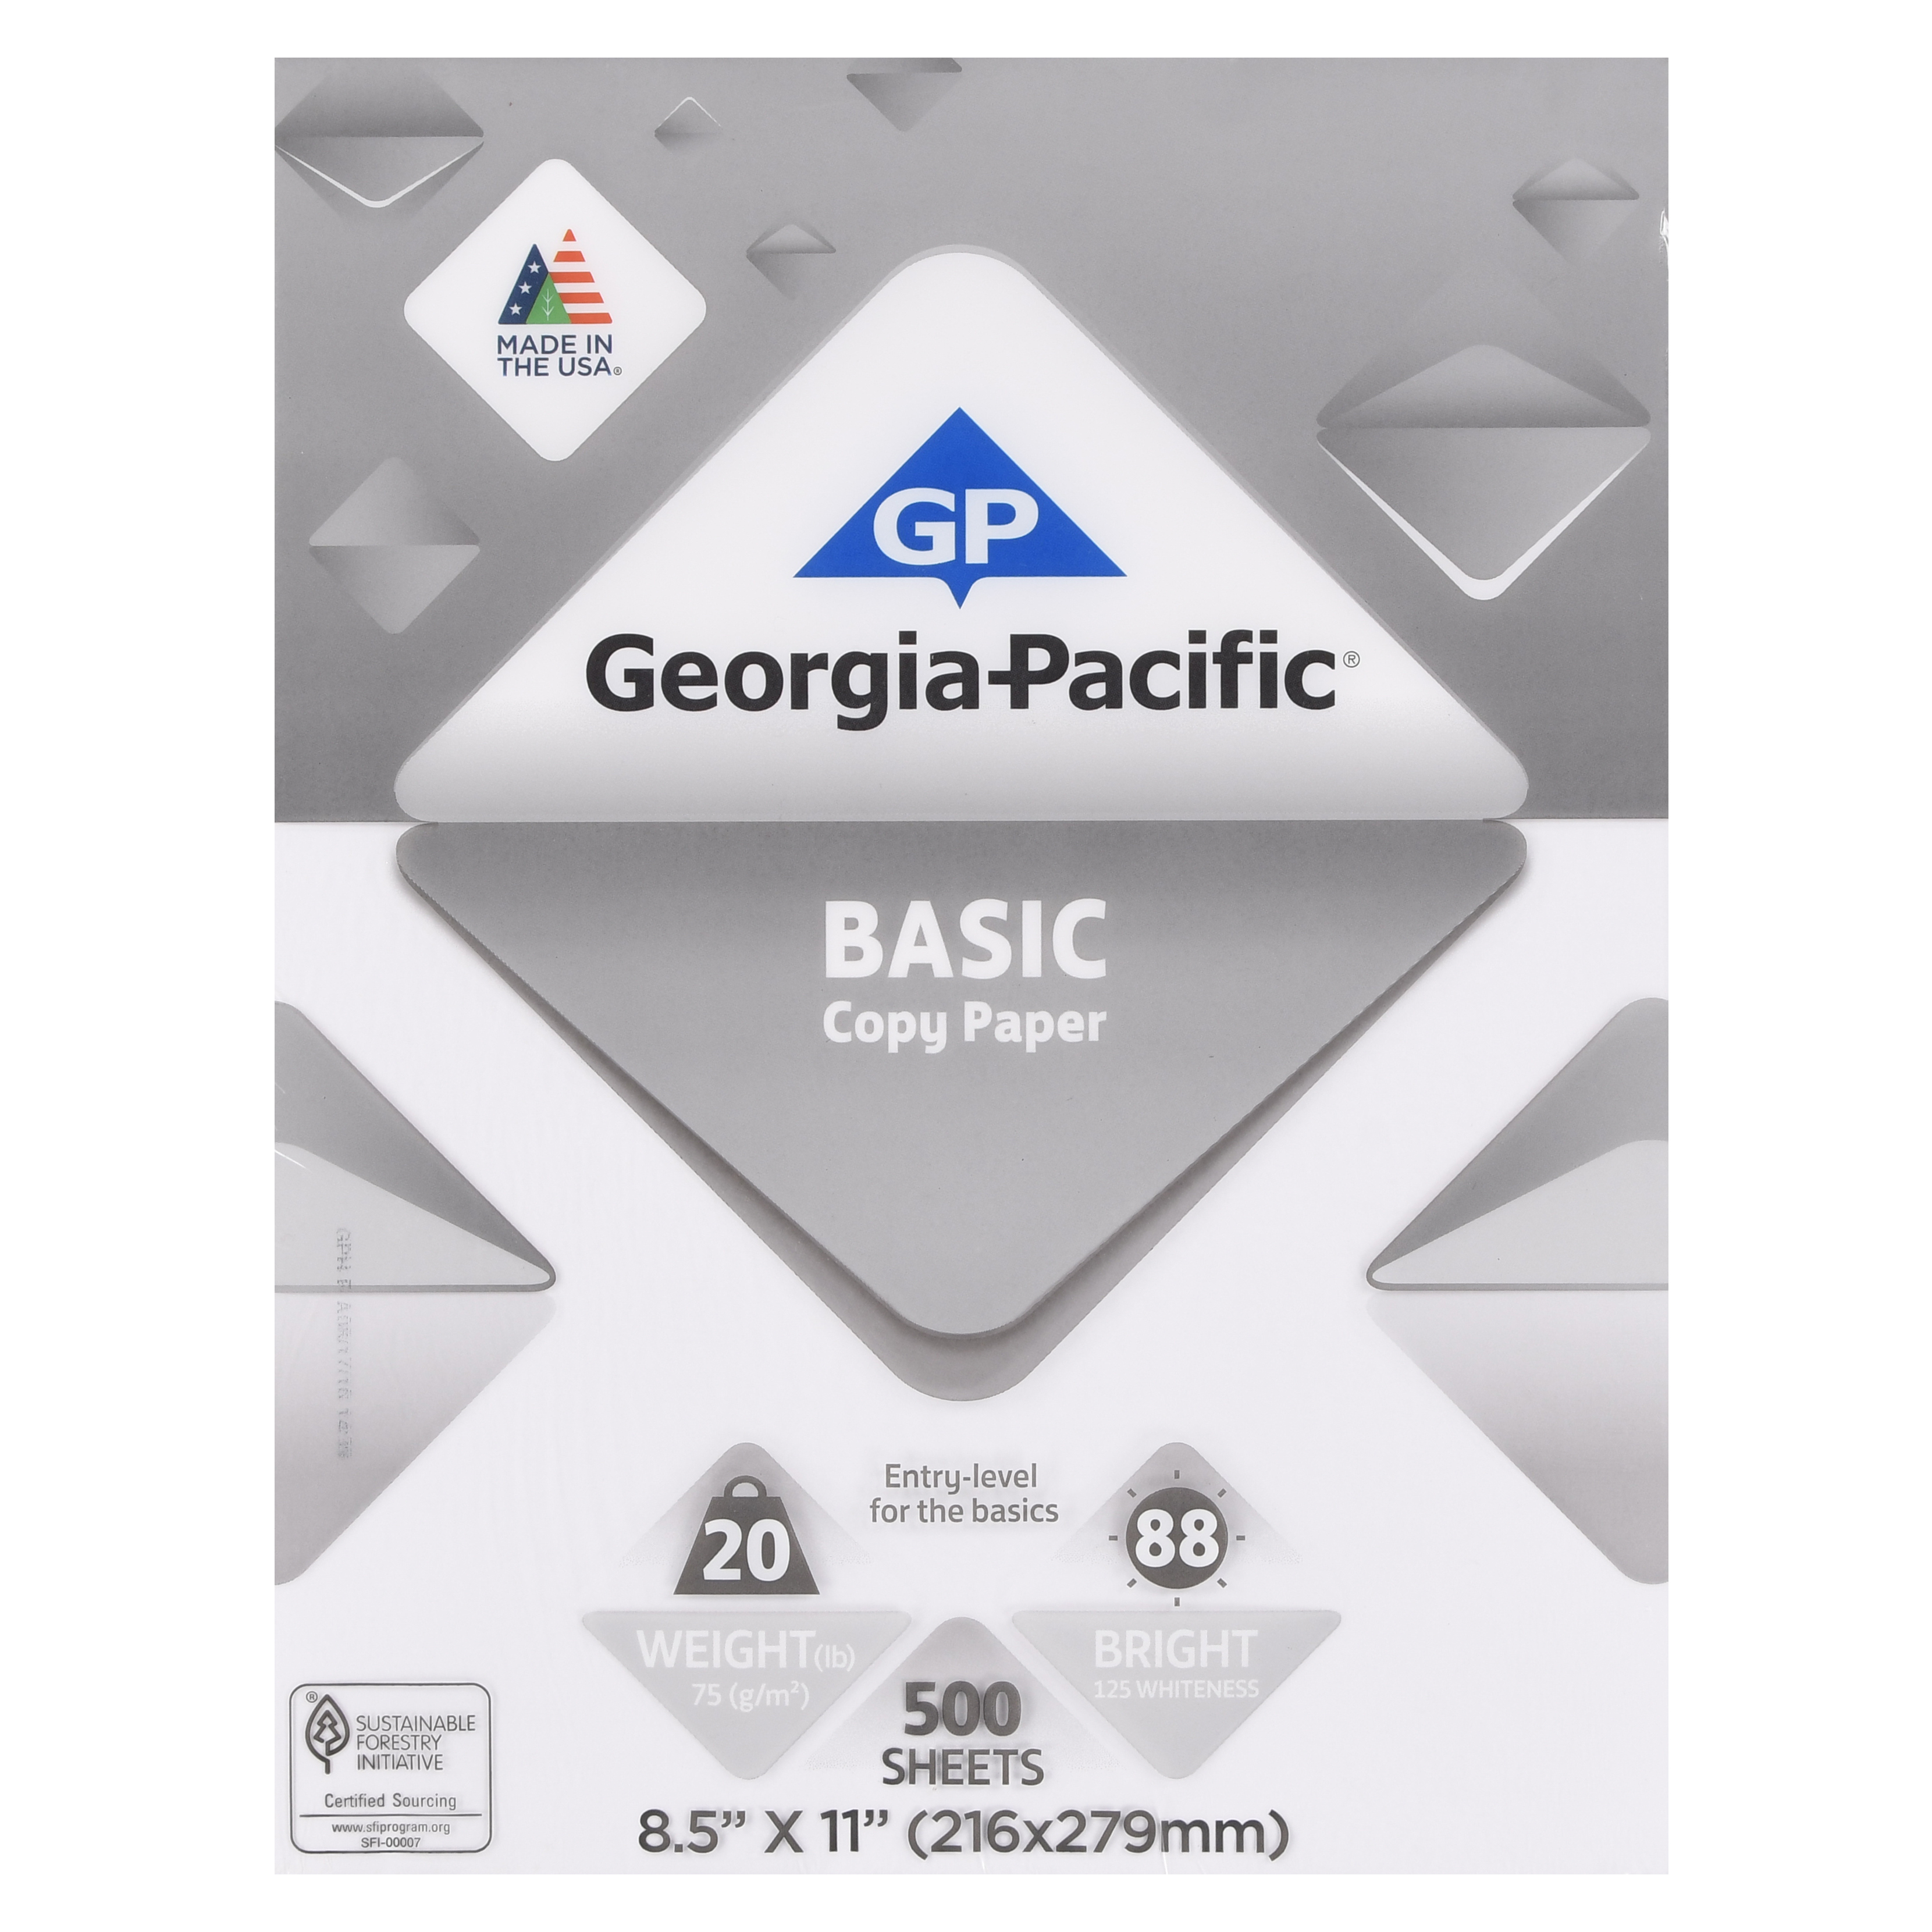 "Georgia-Pacific Basic Copy Paper, 8.5"" x 11"", 20 lb, 88 Brightness, 500 Sheets"